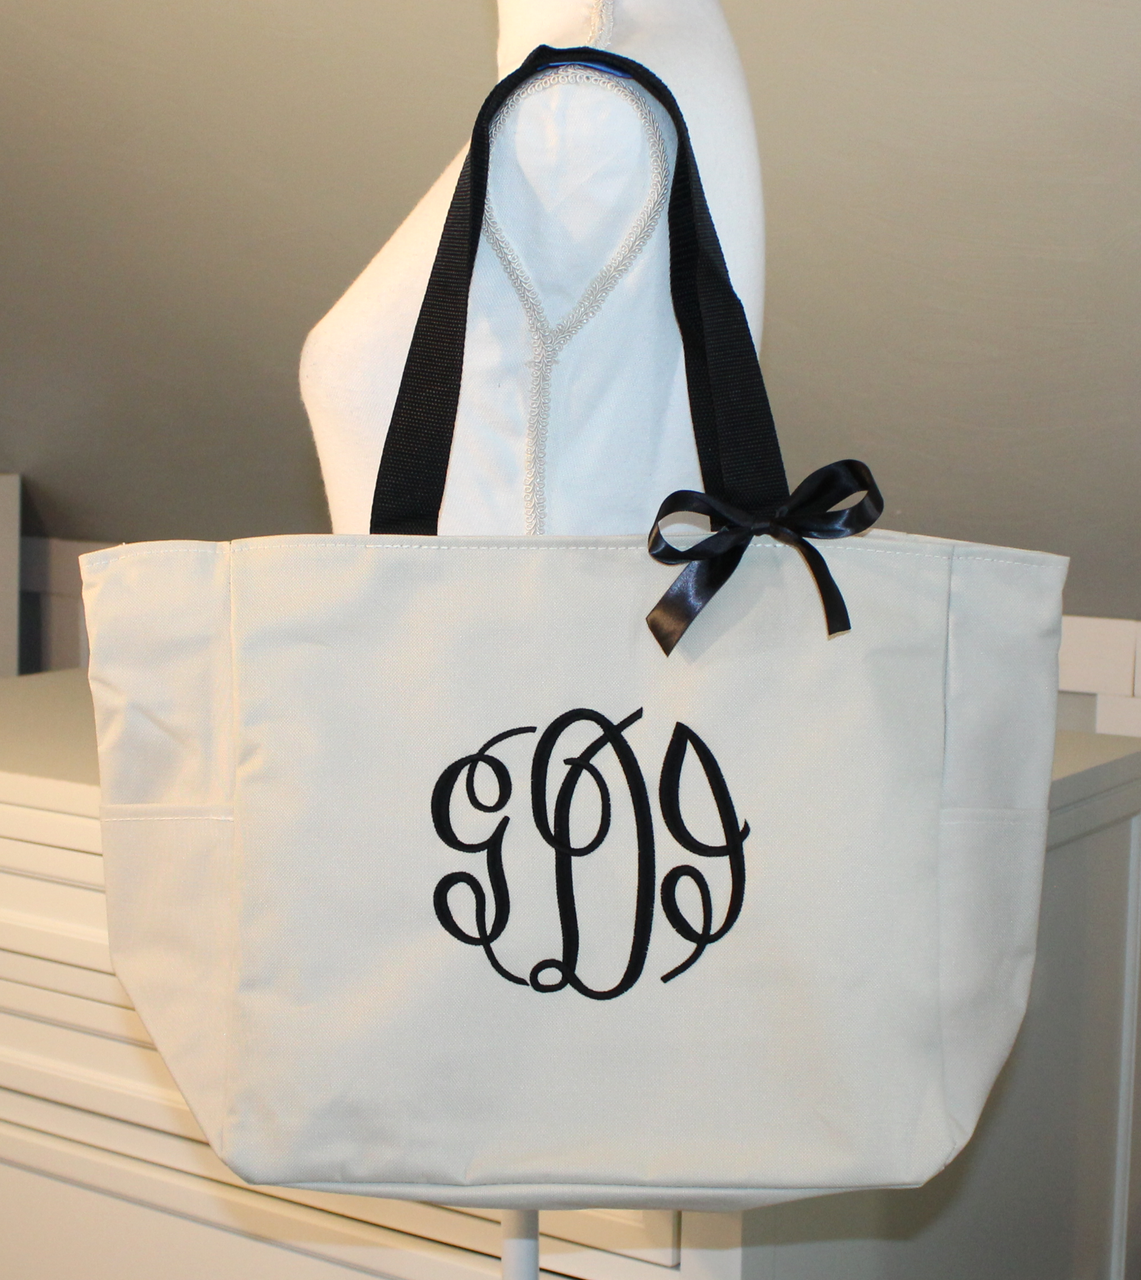 SM-BG407 Embroidered Monogrammed Zippered Tote Monogrammed Zippered Tote Bag Monogrammed Handbag